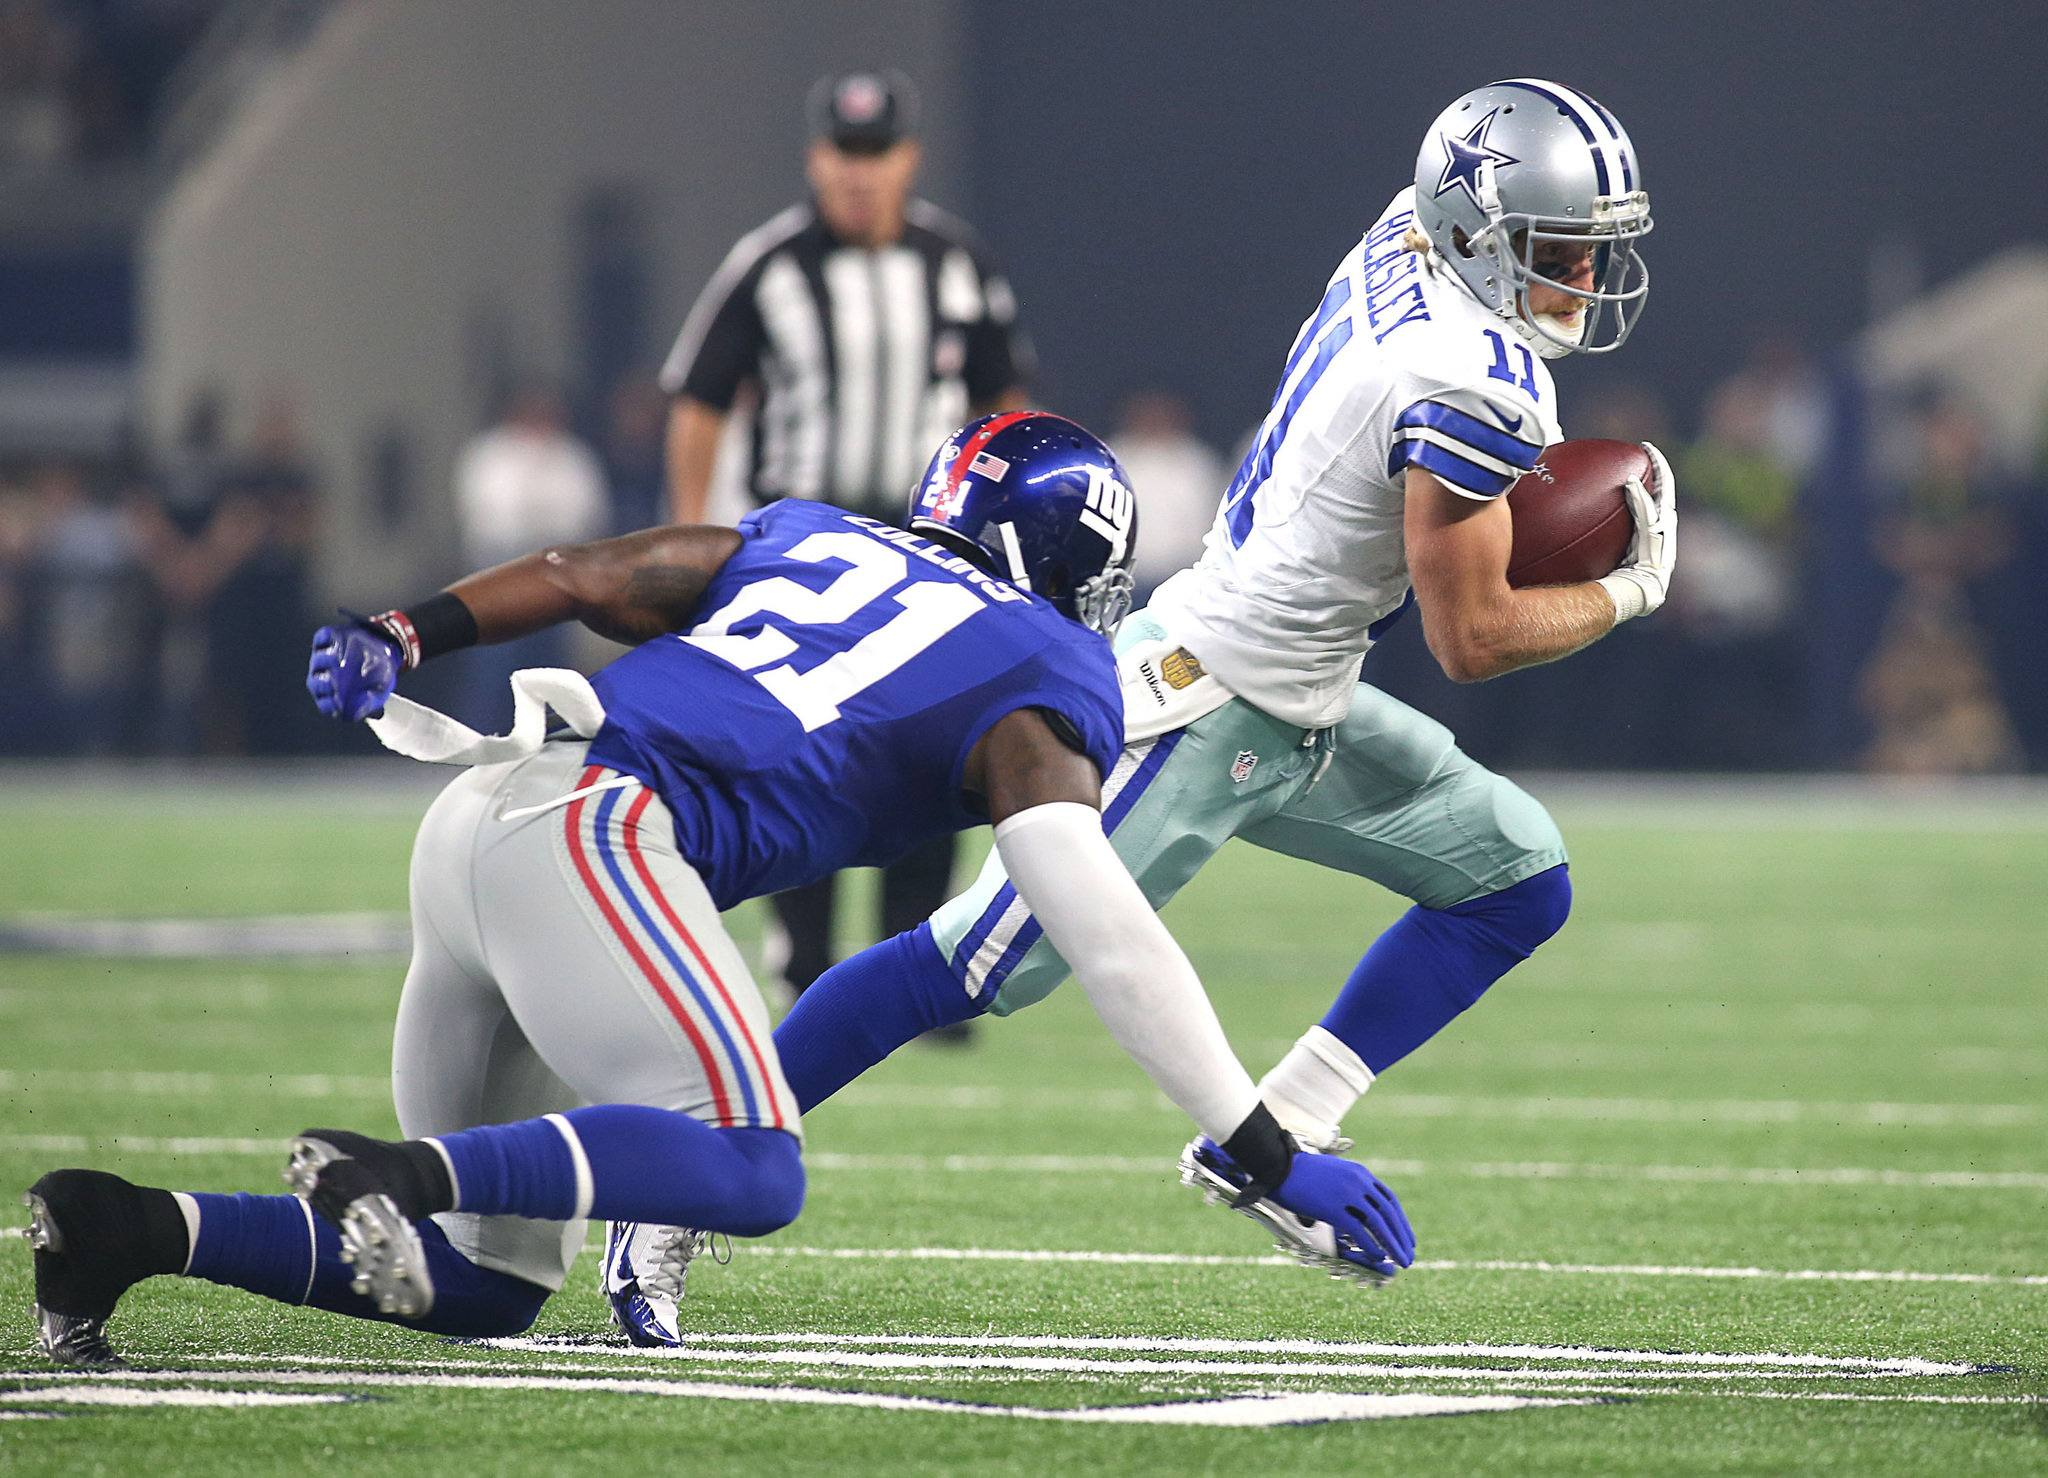 Sean-martin_dallas-cowboys_giants-s-landon-collins-may-finally-know-how-to-beat-cowboys-offense